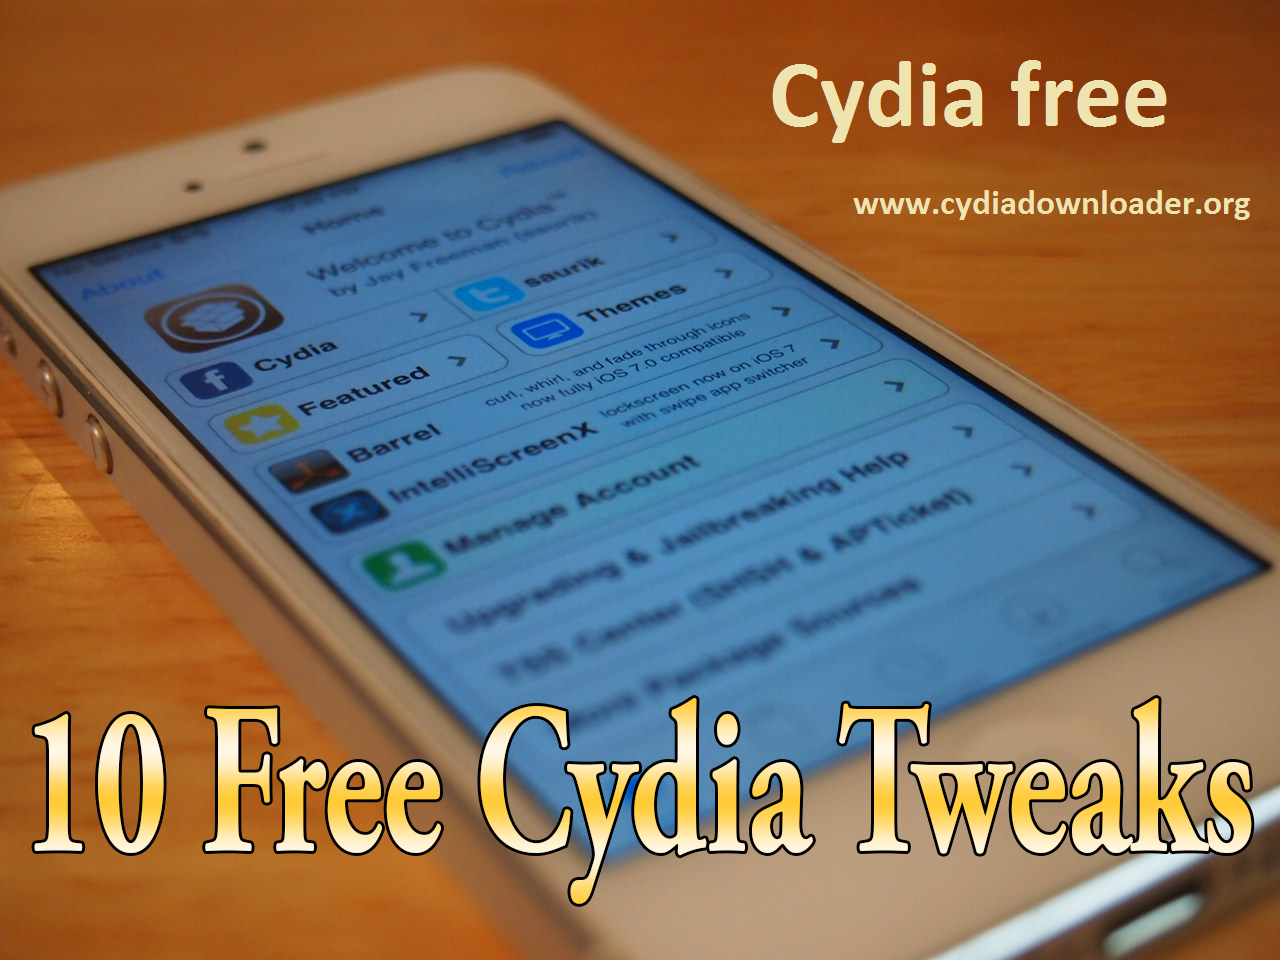 cydia free download